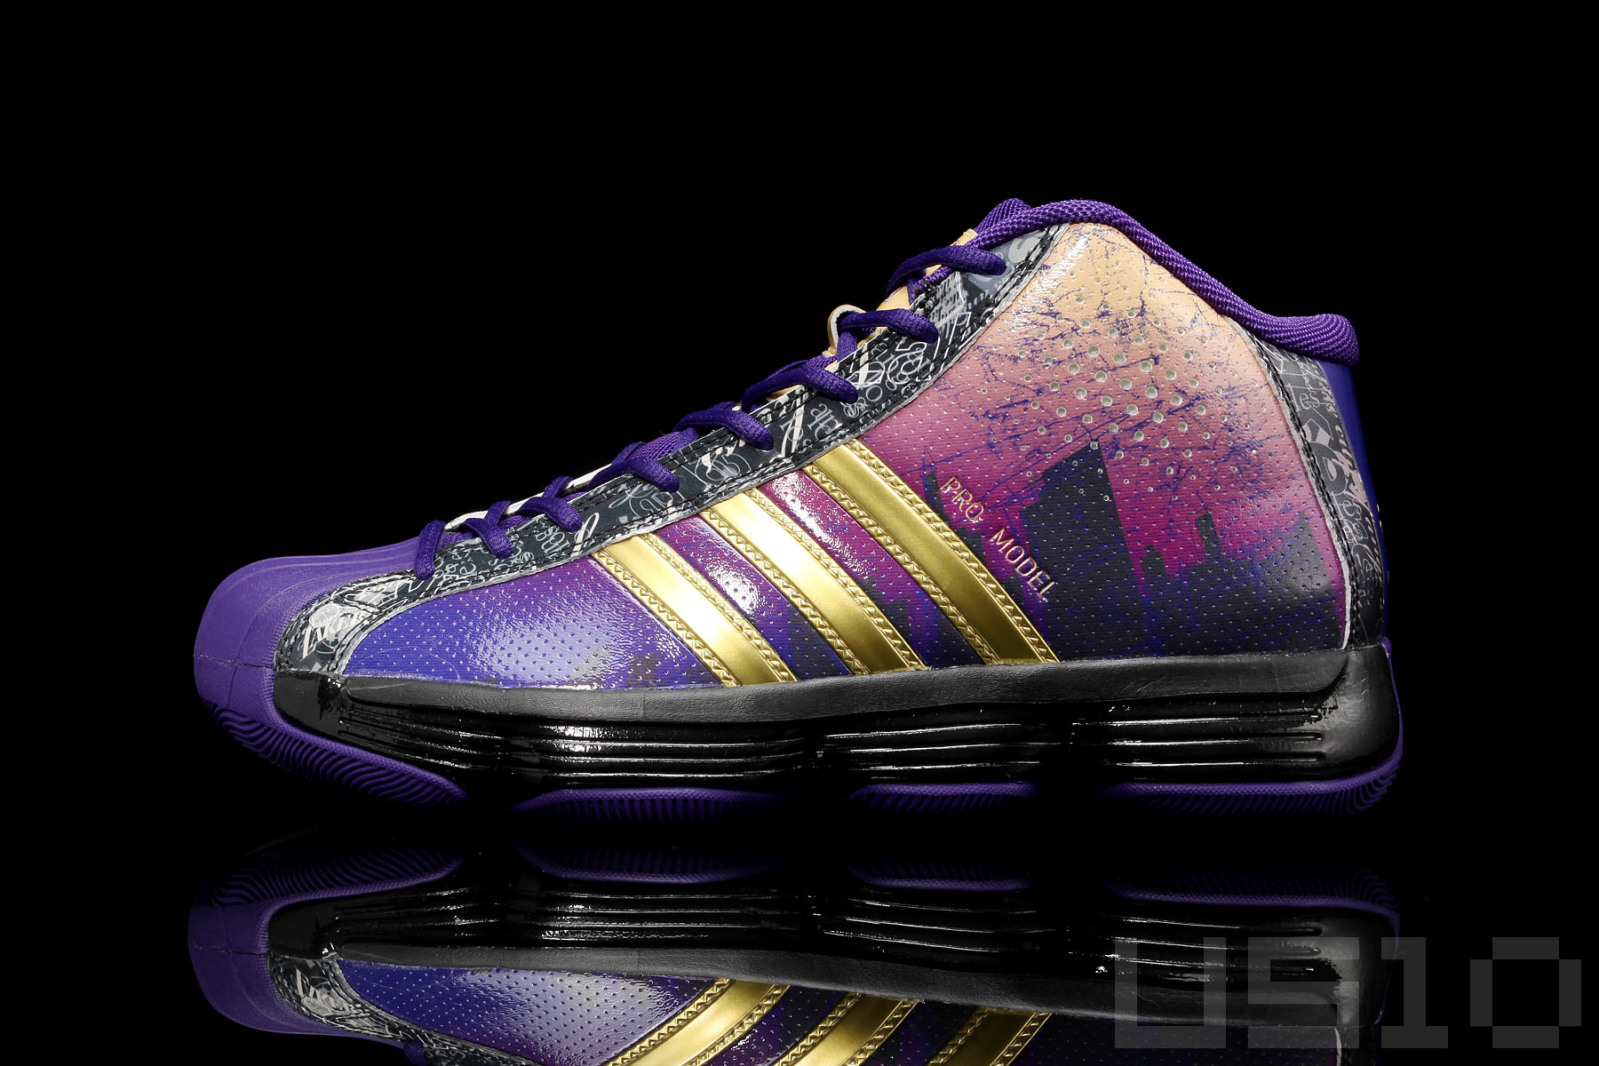 adidas Pro Model 2010 City Pack Los Angeles